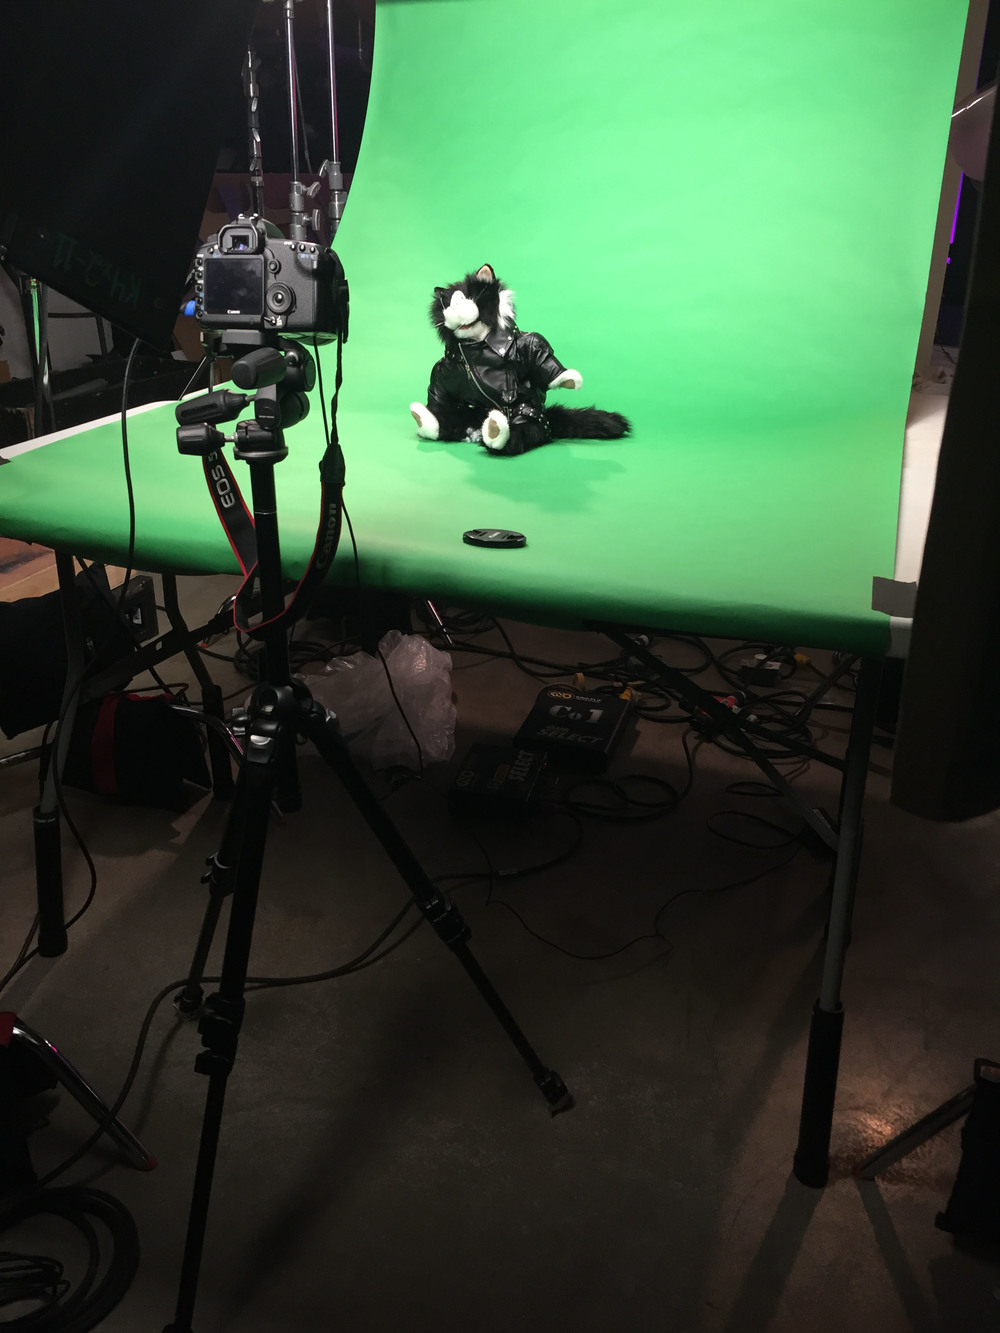 greenscreen-studio.jpg